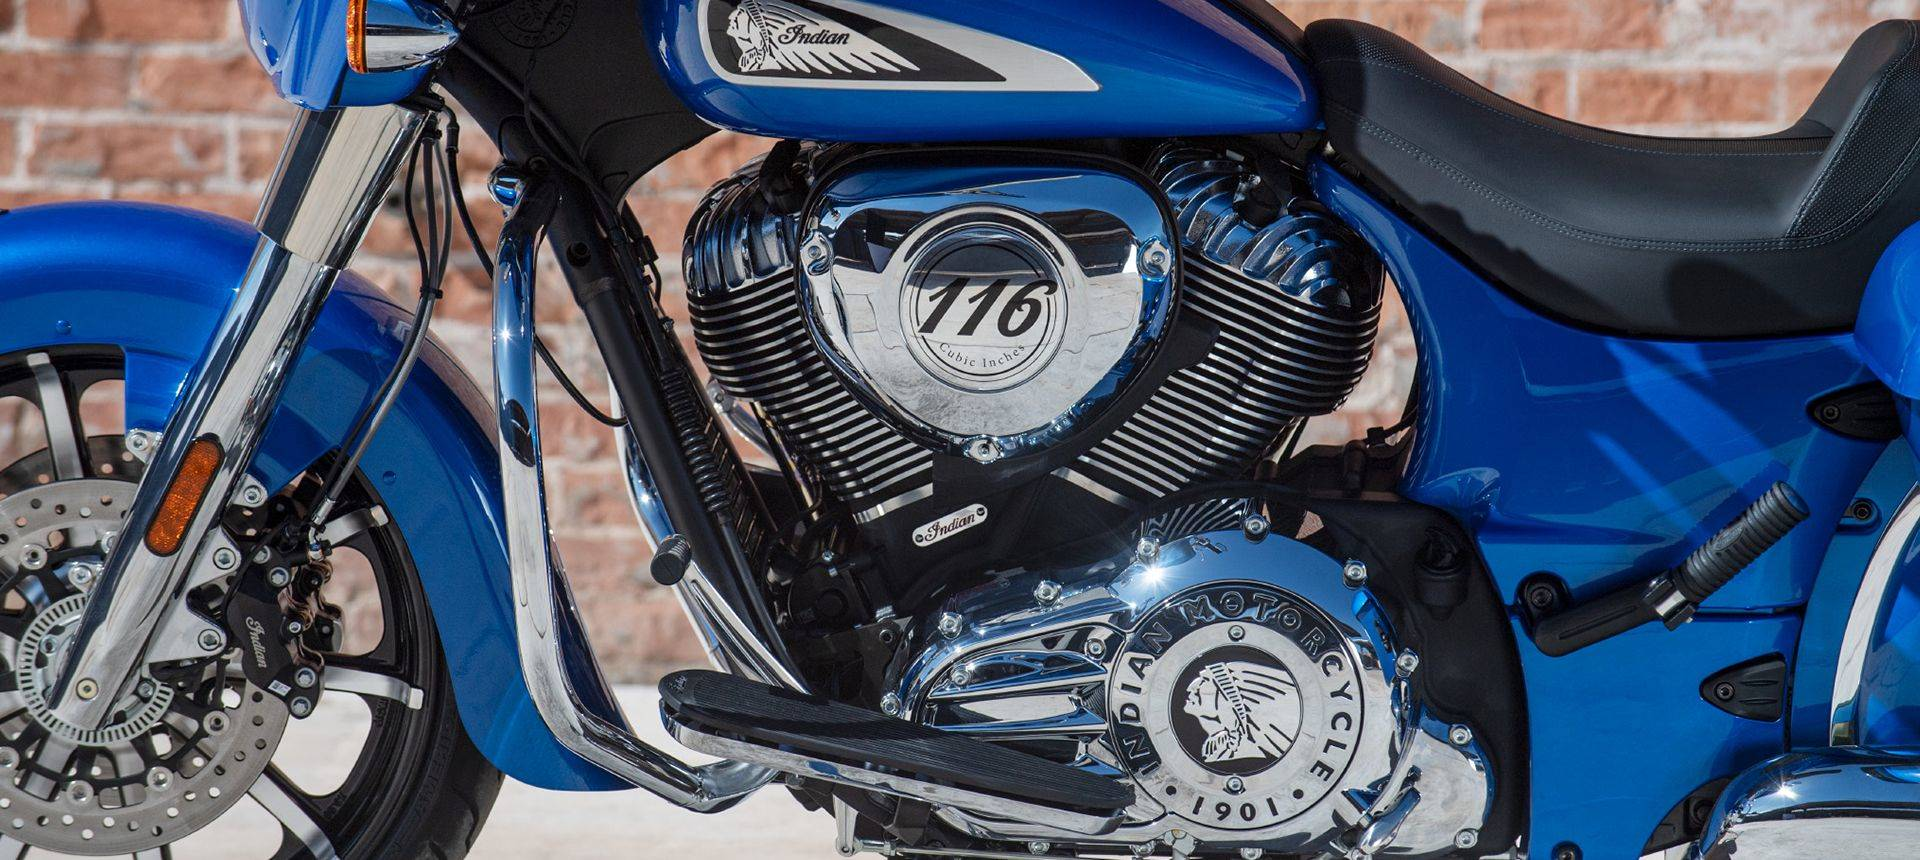 2020 Indian CHIEFTAIN LIMITED in Panama City Beach, Florida - Photo 5